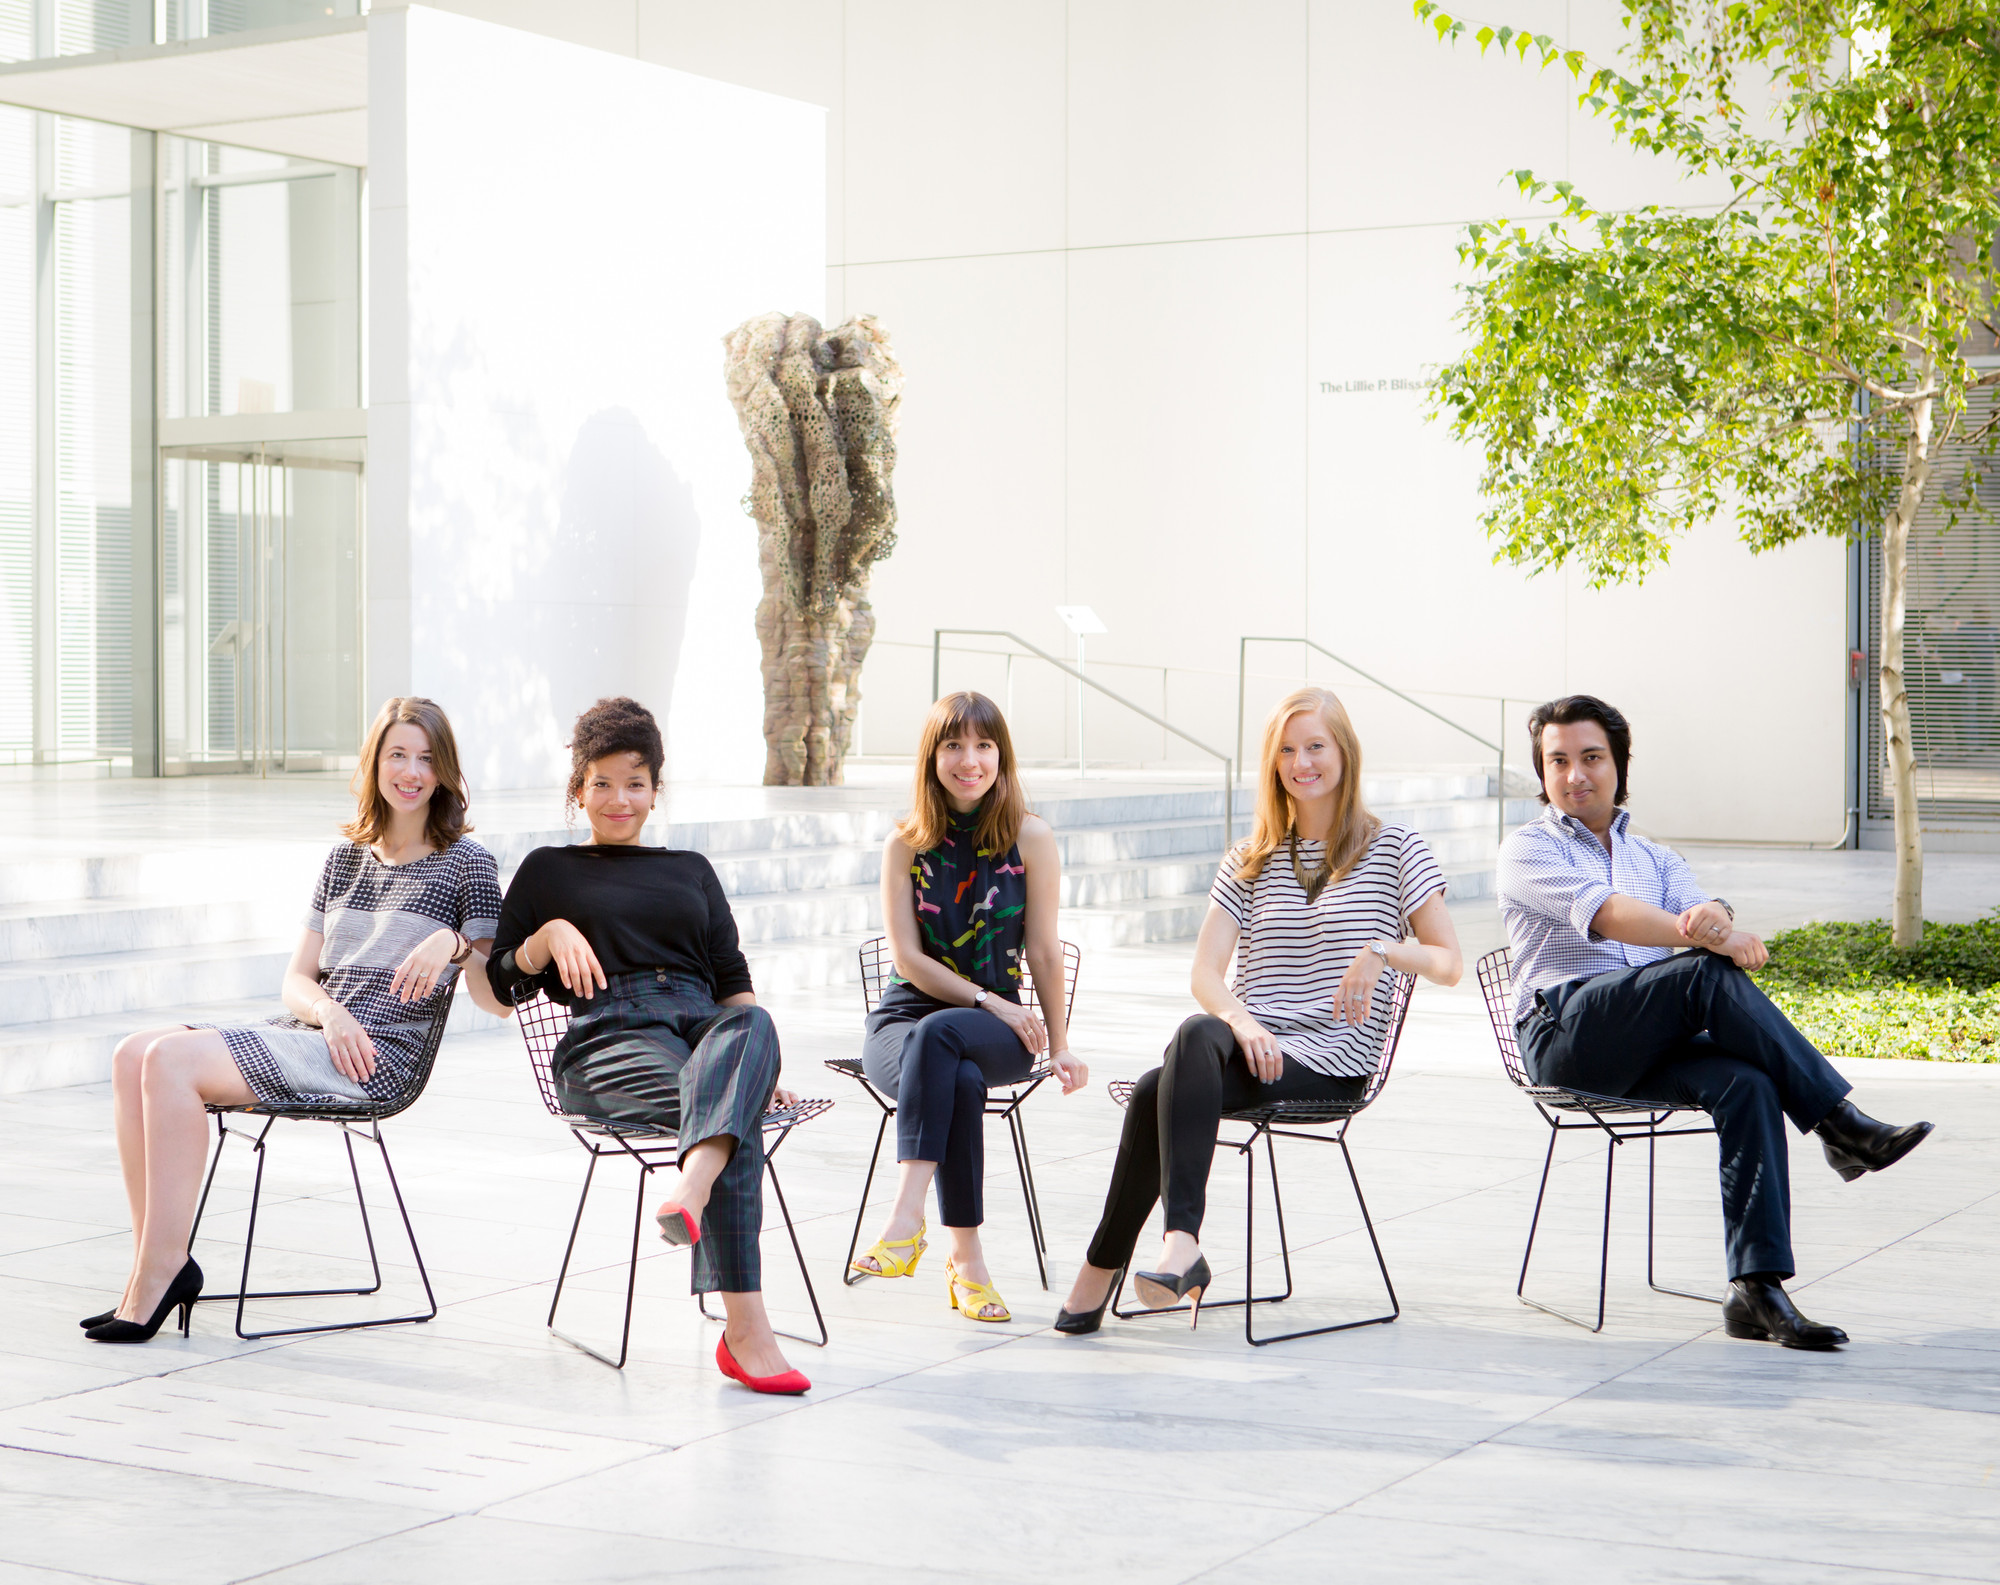 2015-16 MRC Fellows, from left: Natalie Dupêcher, Nomaduma Masilela, Antonia Pocock, Elizabeth Hawley, and Swagato Chakravorty. Photo: Marcin J. Muchalski, Diamond Shot Studio